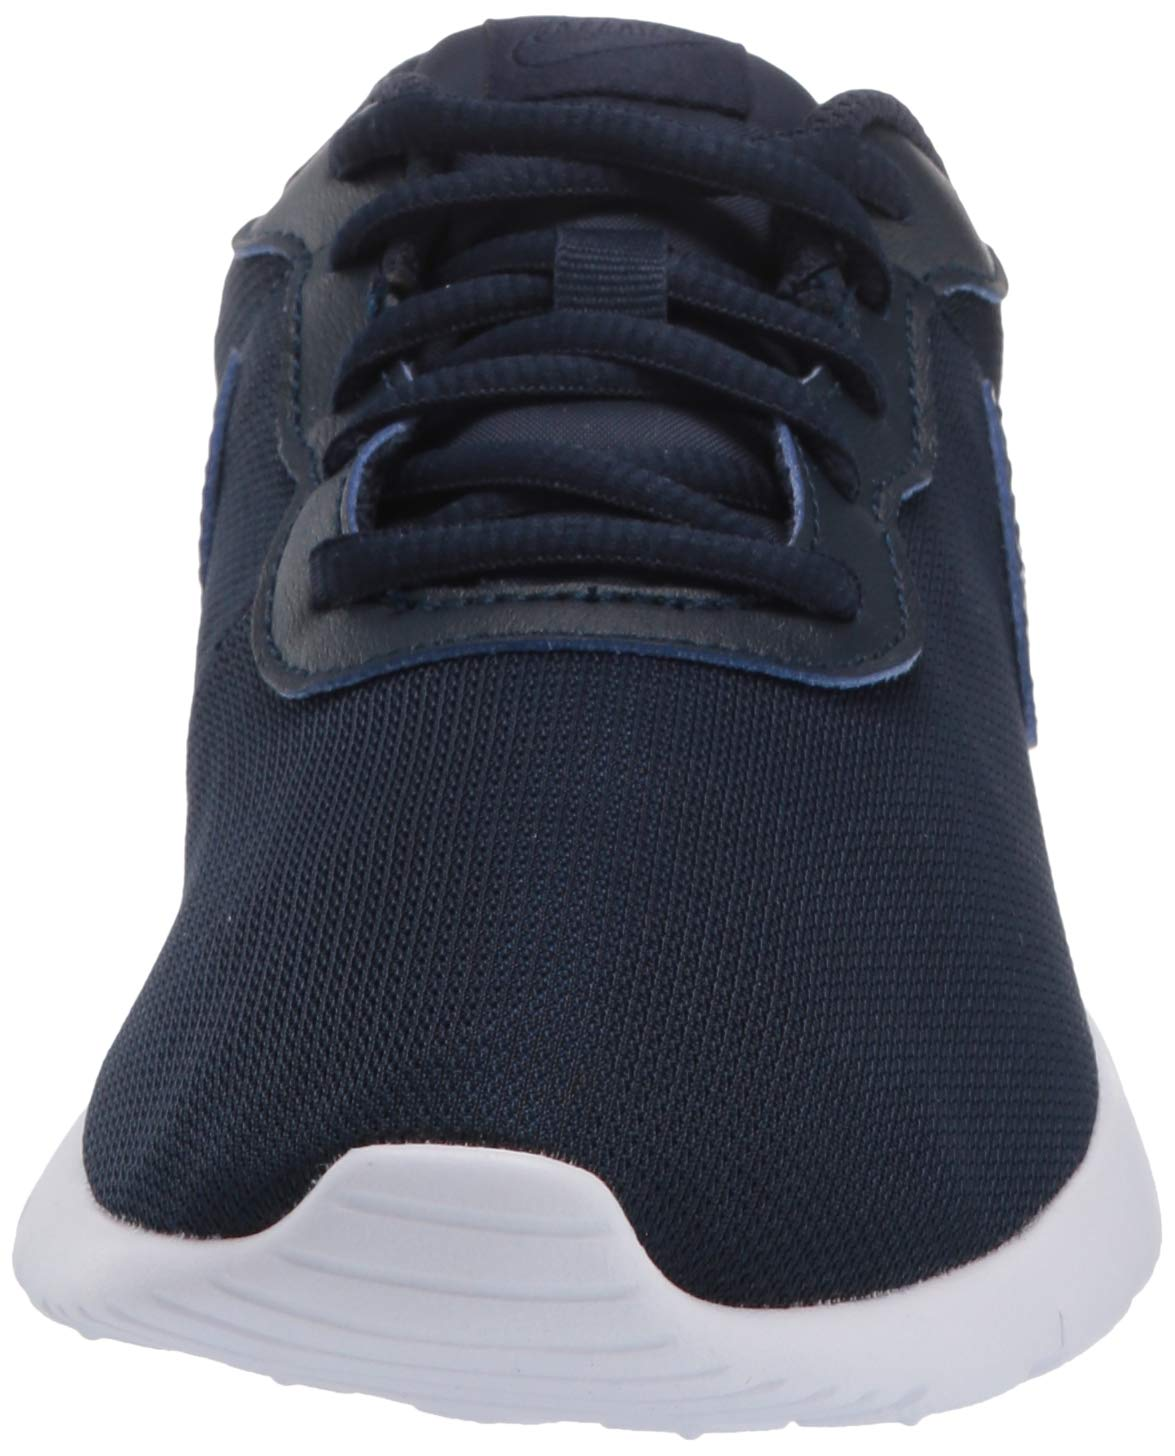 NIKE Older Kids' Tanjun Sneakers